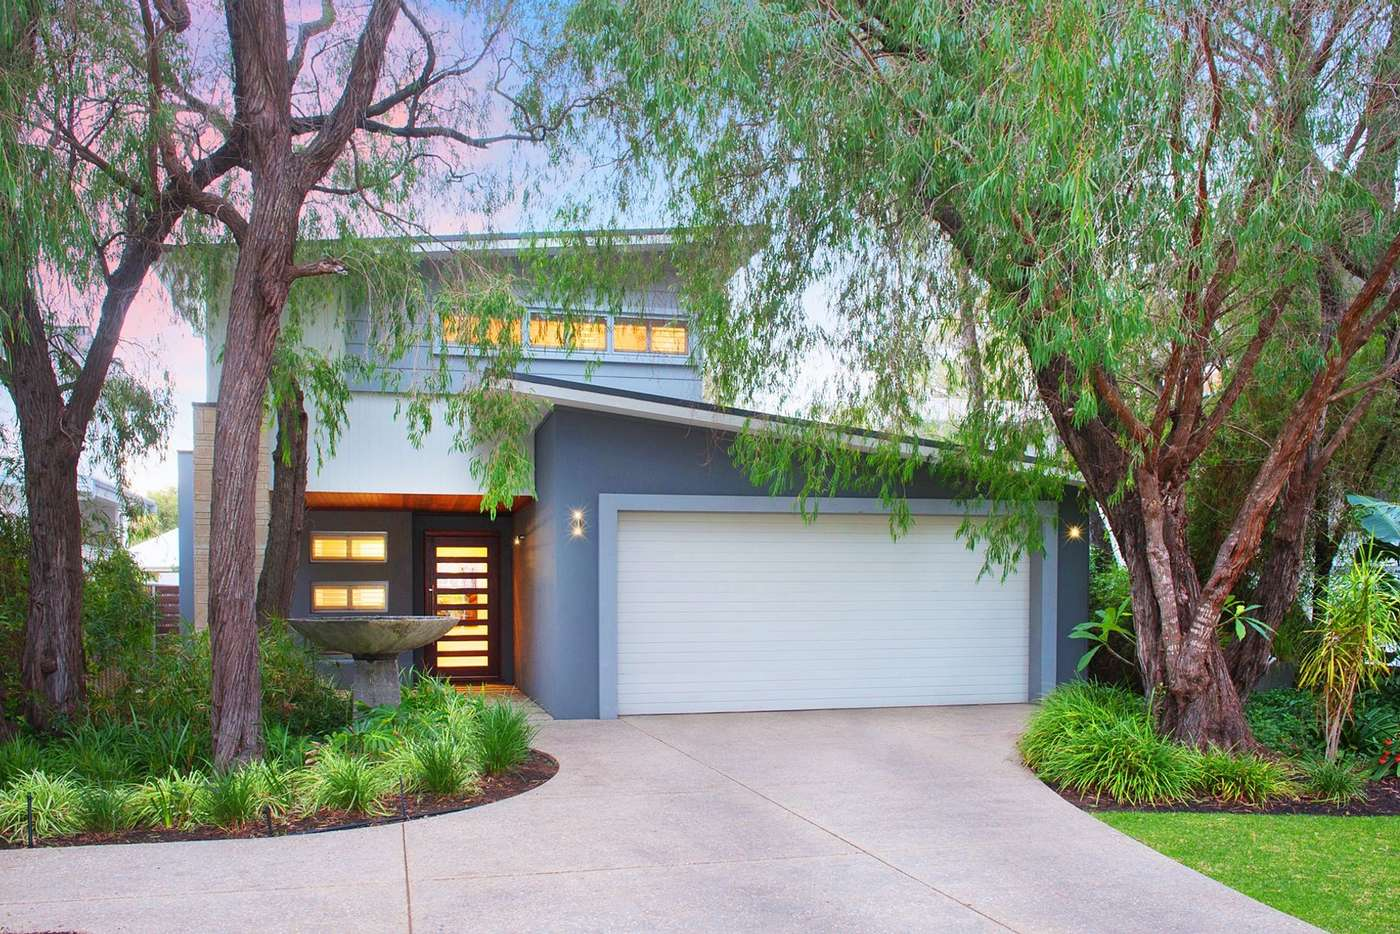 Main view of Homely house listing, 3 Peppermint Drive, Dunsborough WA 6281